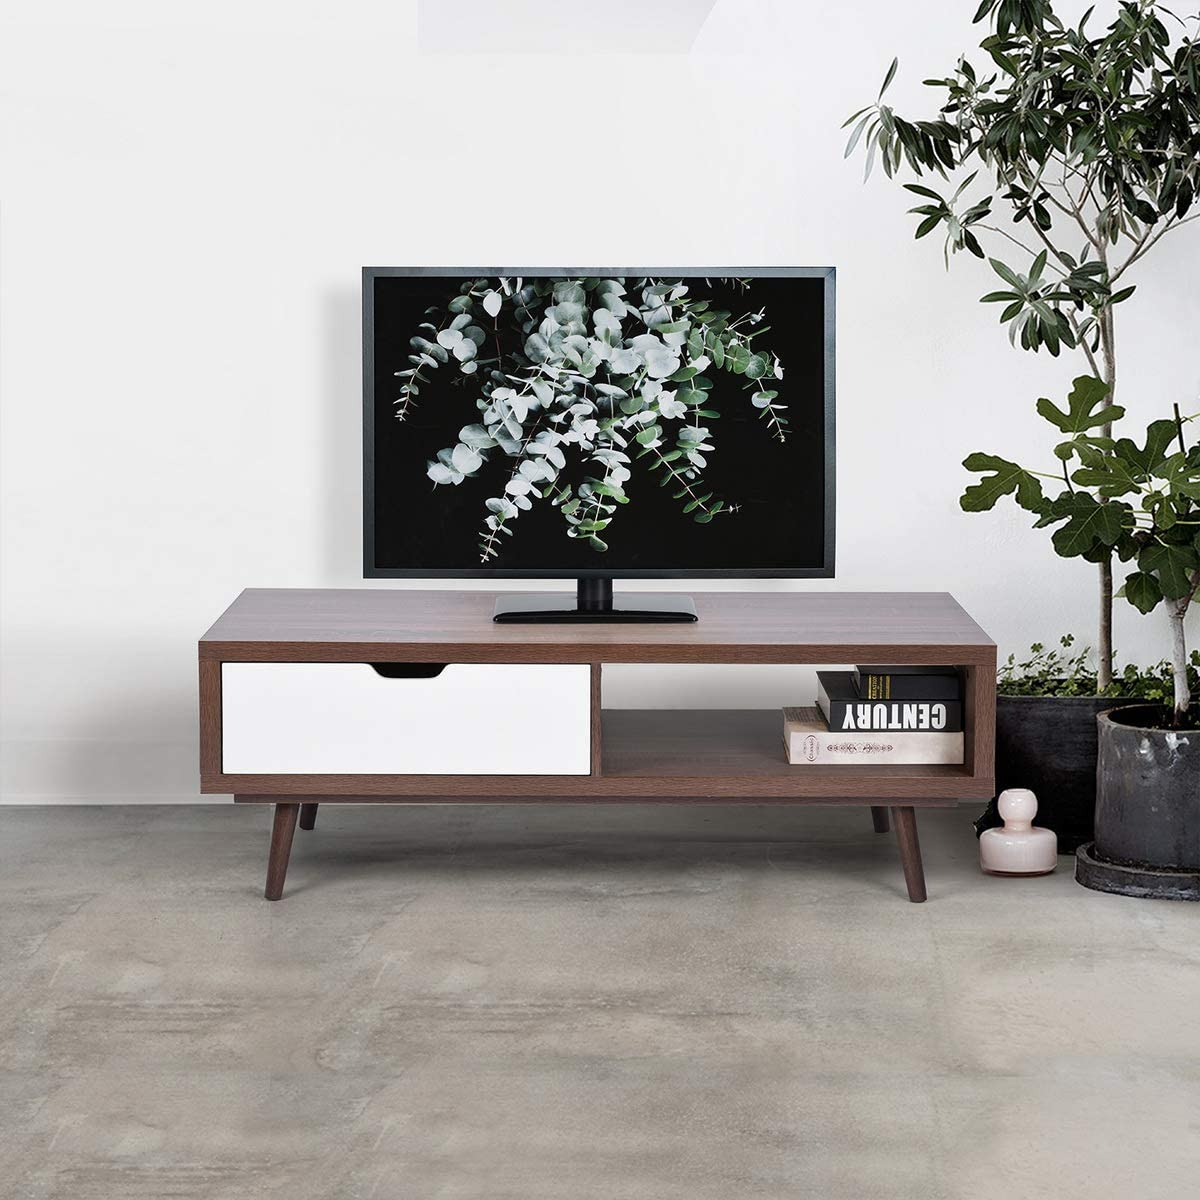 FurnitureR Modern Coffee Table Occsional Living Room Table TV Stand Table with Storage Shelves Beech